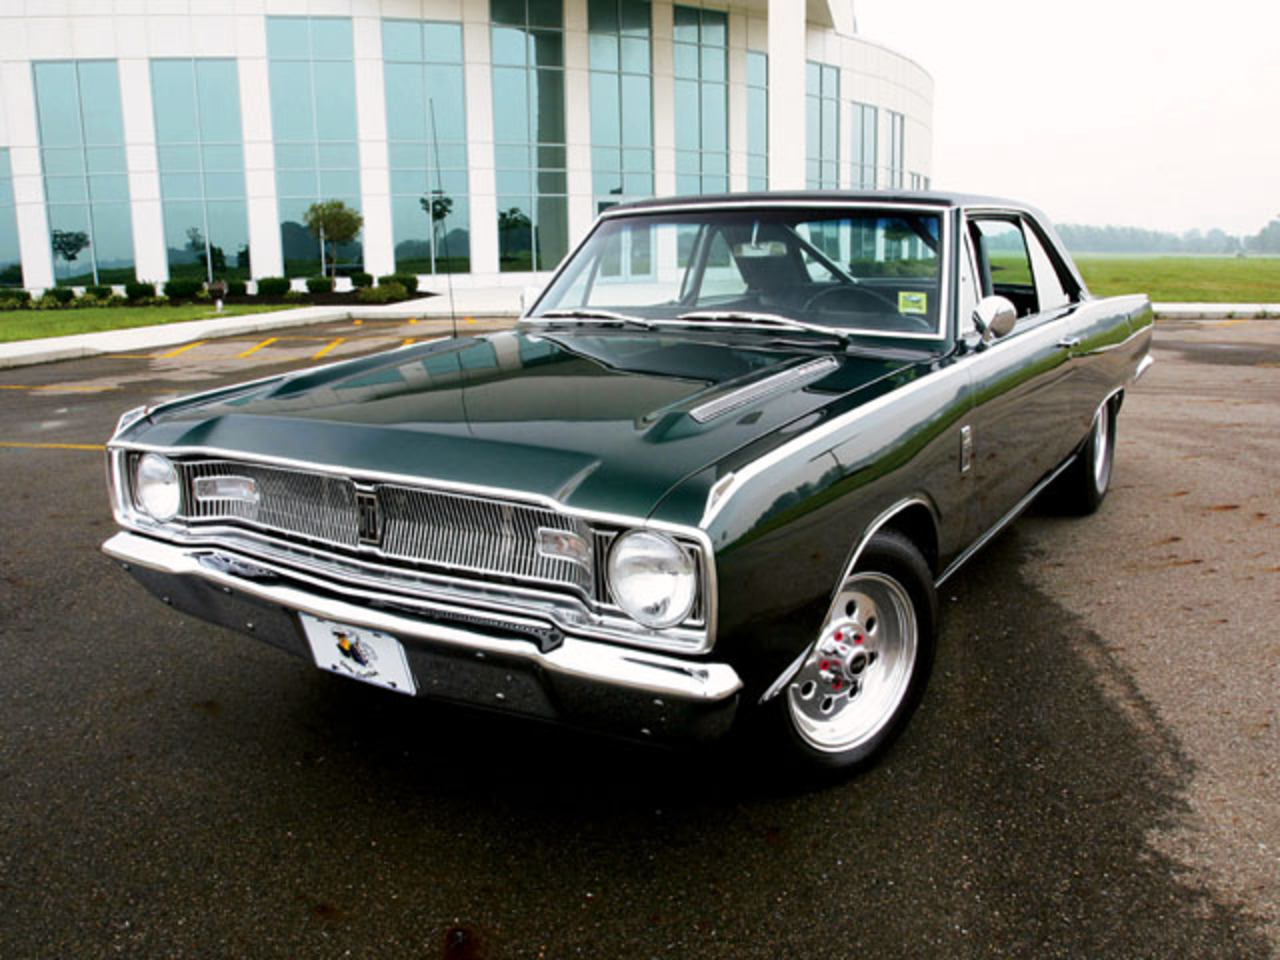 1967 Dodge Dart Gt Front View